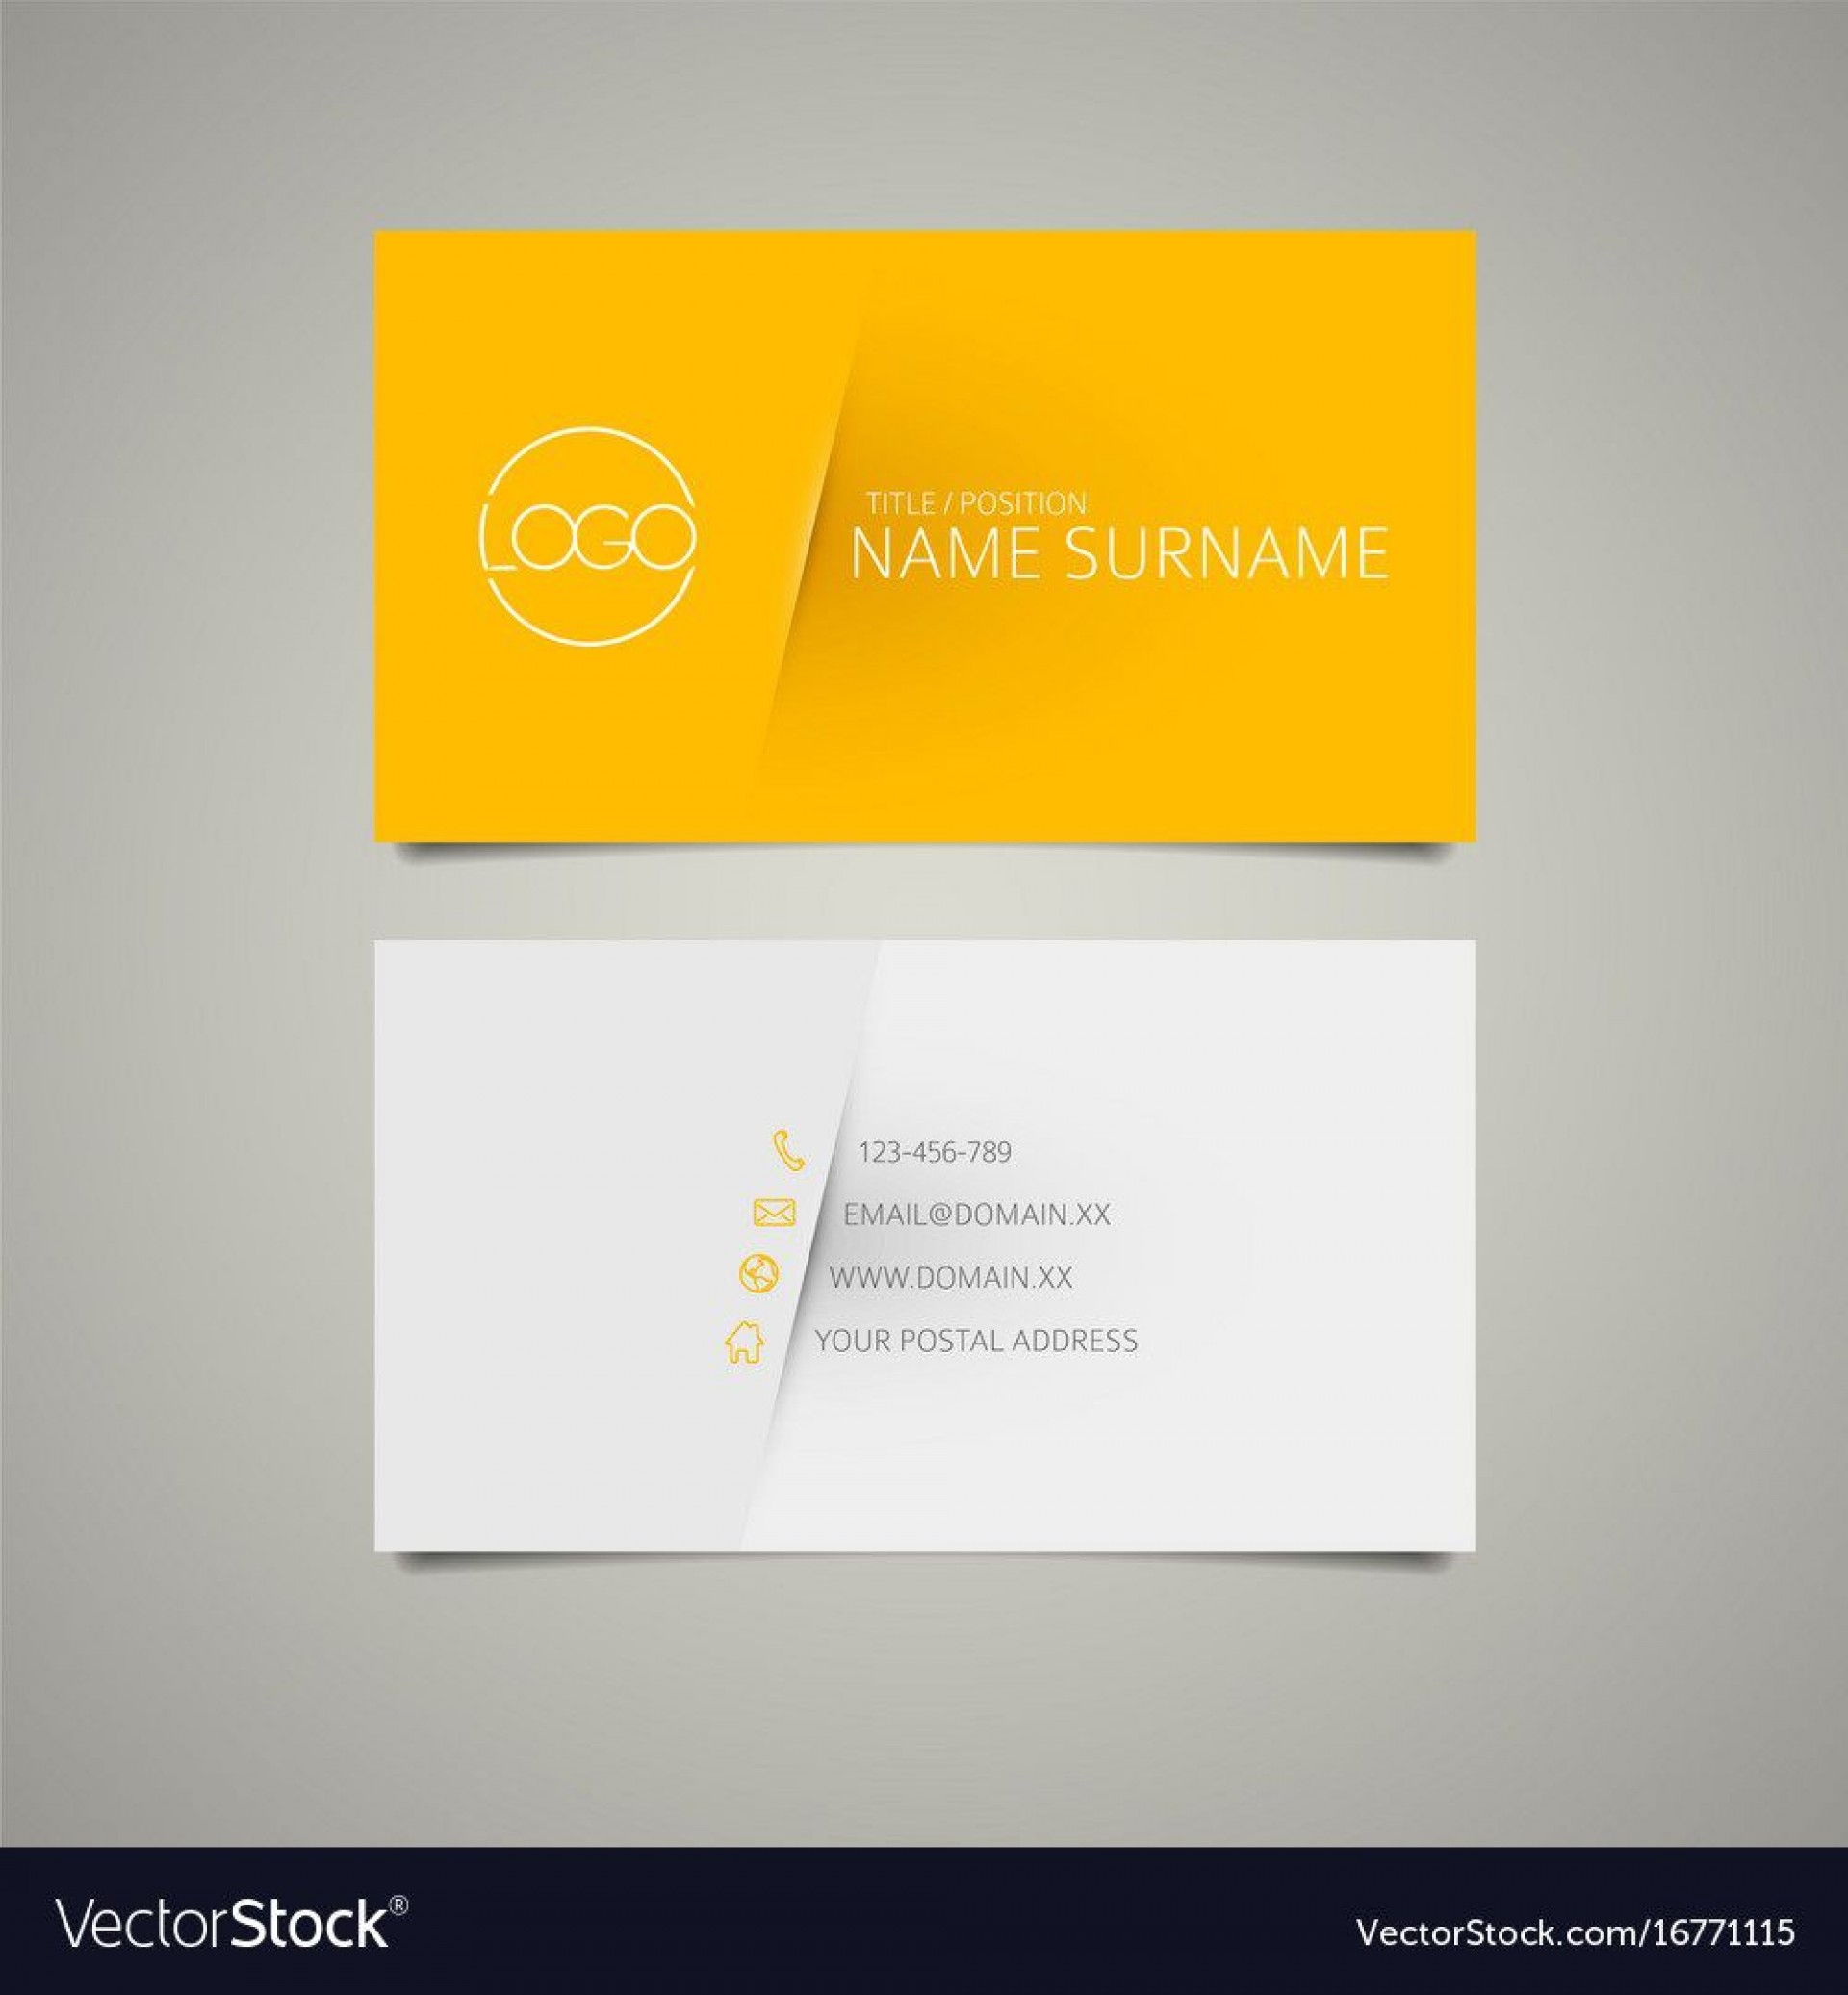 009 Unforgettable Simple Busines Card Template Free Idea  Visiting Design Psd File Download Minimalist Basic1920